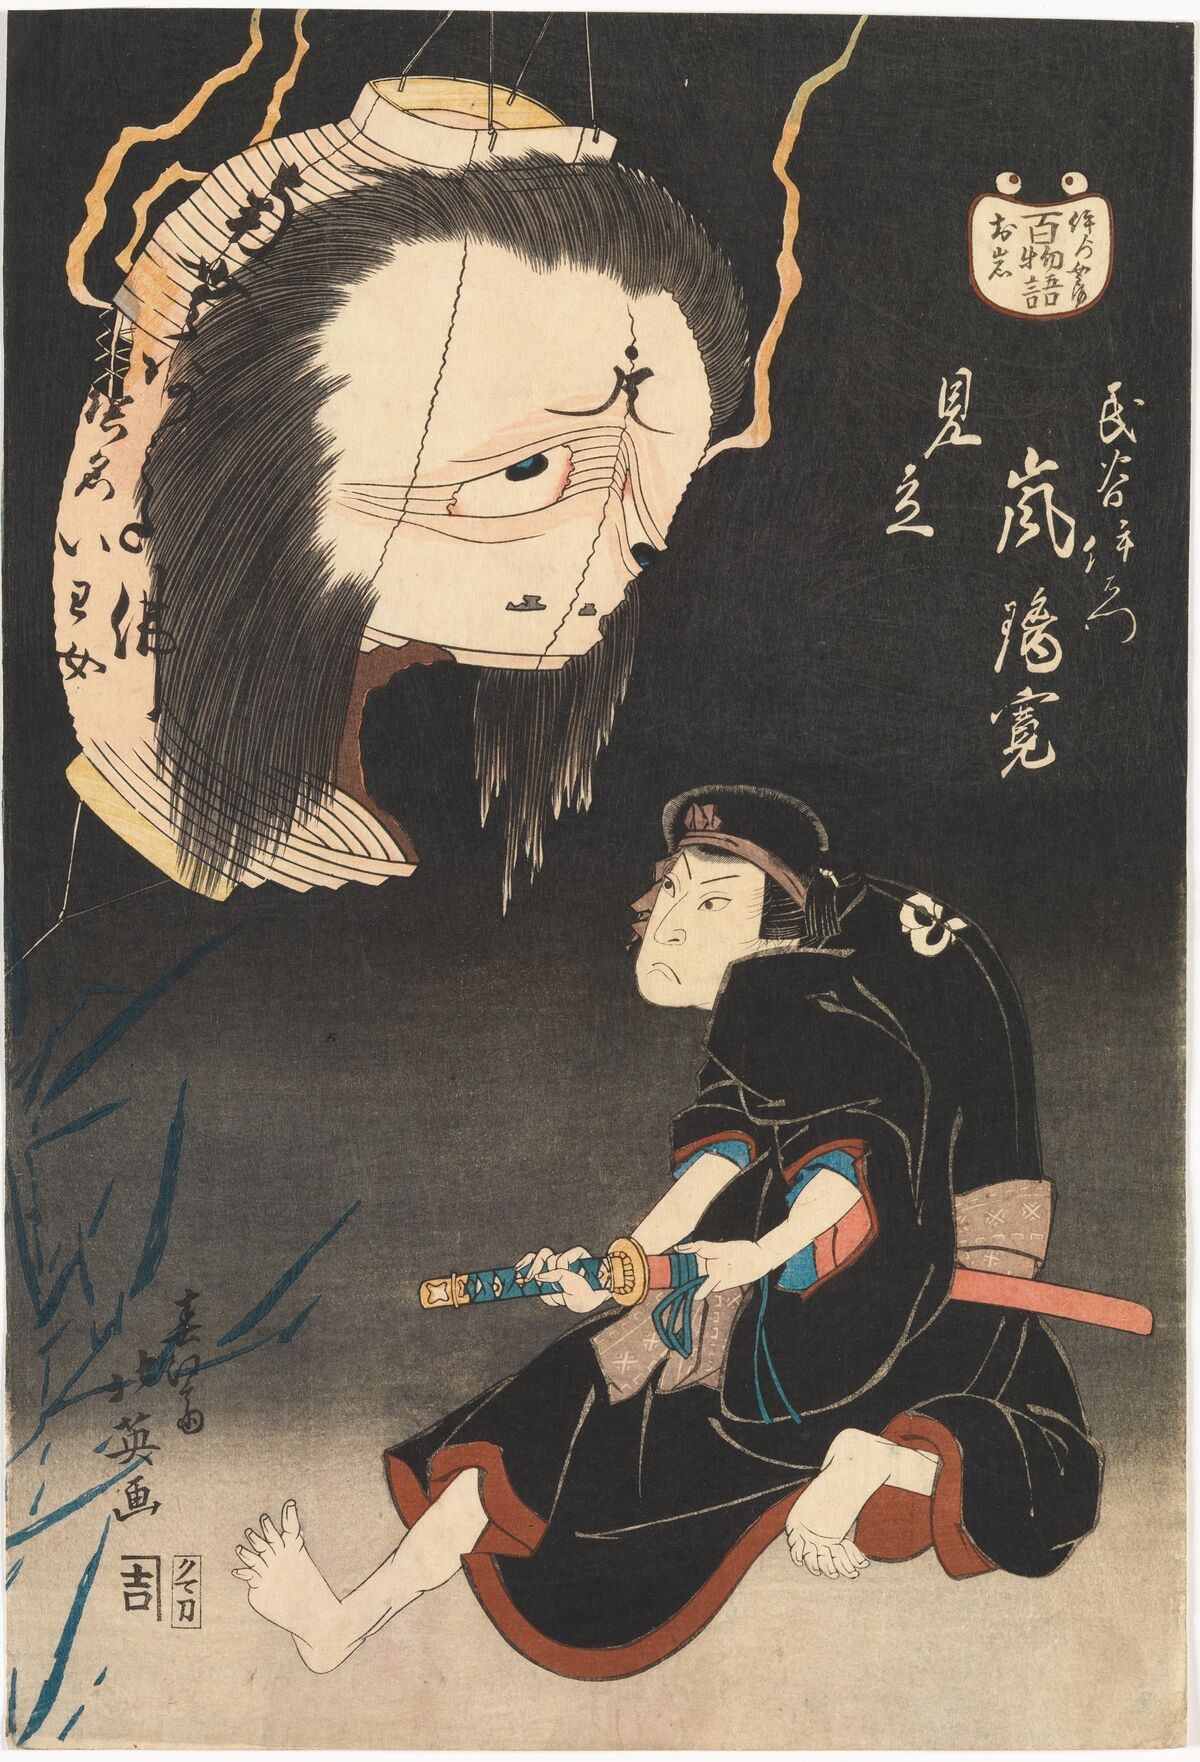 Shunbaisai Hokuei, An Imaginary View of Arashi Rikan II as Iemon Confronted by an Image of the Murdered Oiwa on a Broken Lantern, 1831. Courtesy of The Metropolitan Museum of Art.